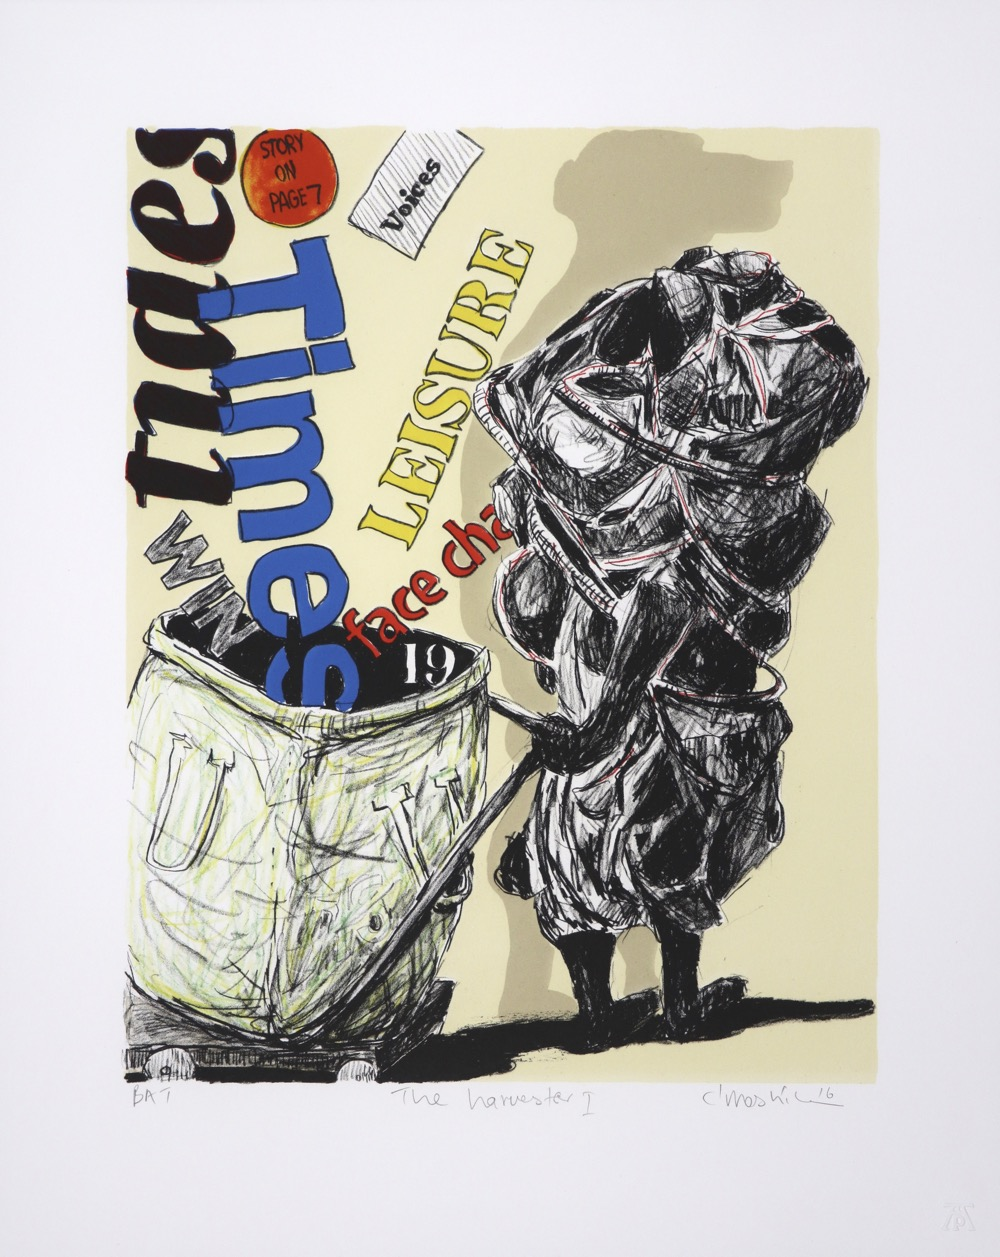 A human figure, with baboon shadow dragging recycling trolley with random media text and letters.